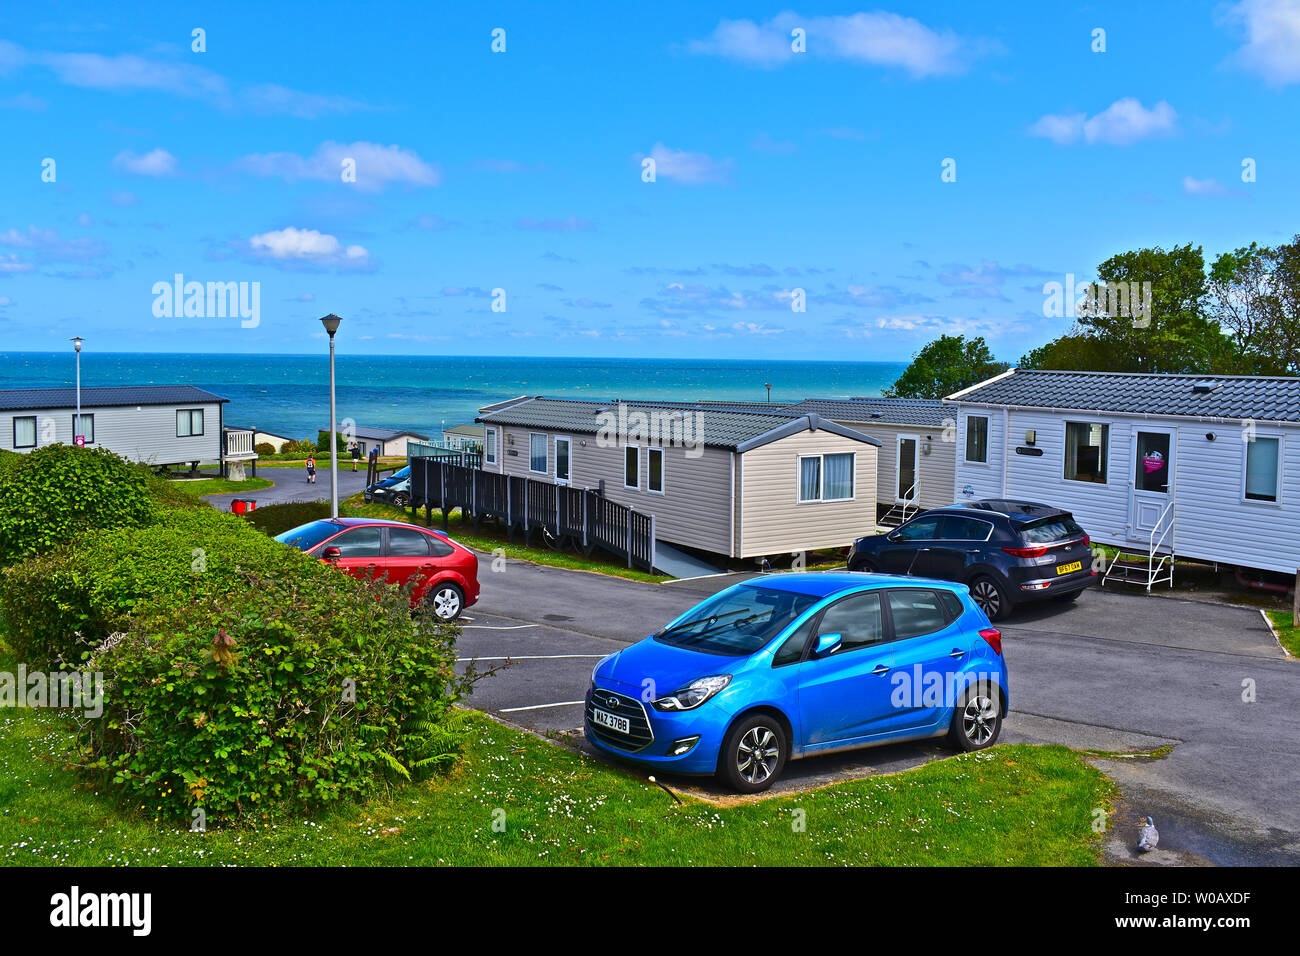 A view of static holiday caravans which overlook Cardigan Bay near Newquay in West Wales.Blue skies & white clouds. Cars parked nearby. - Stock Image